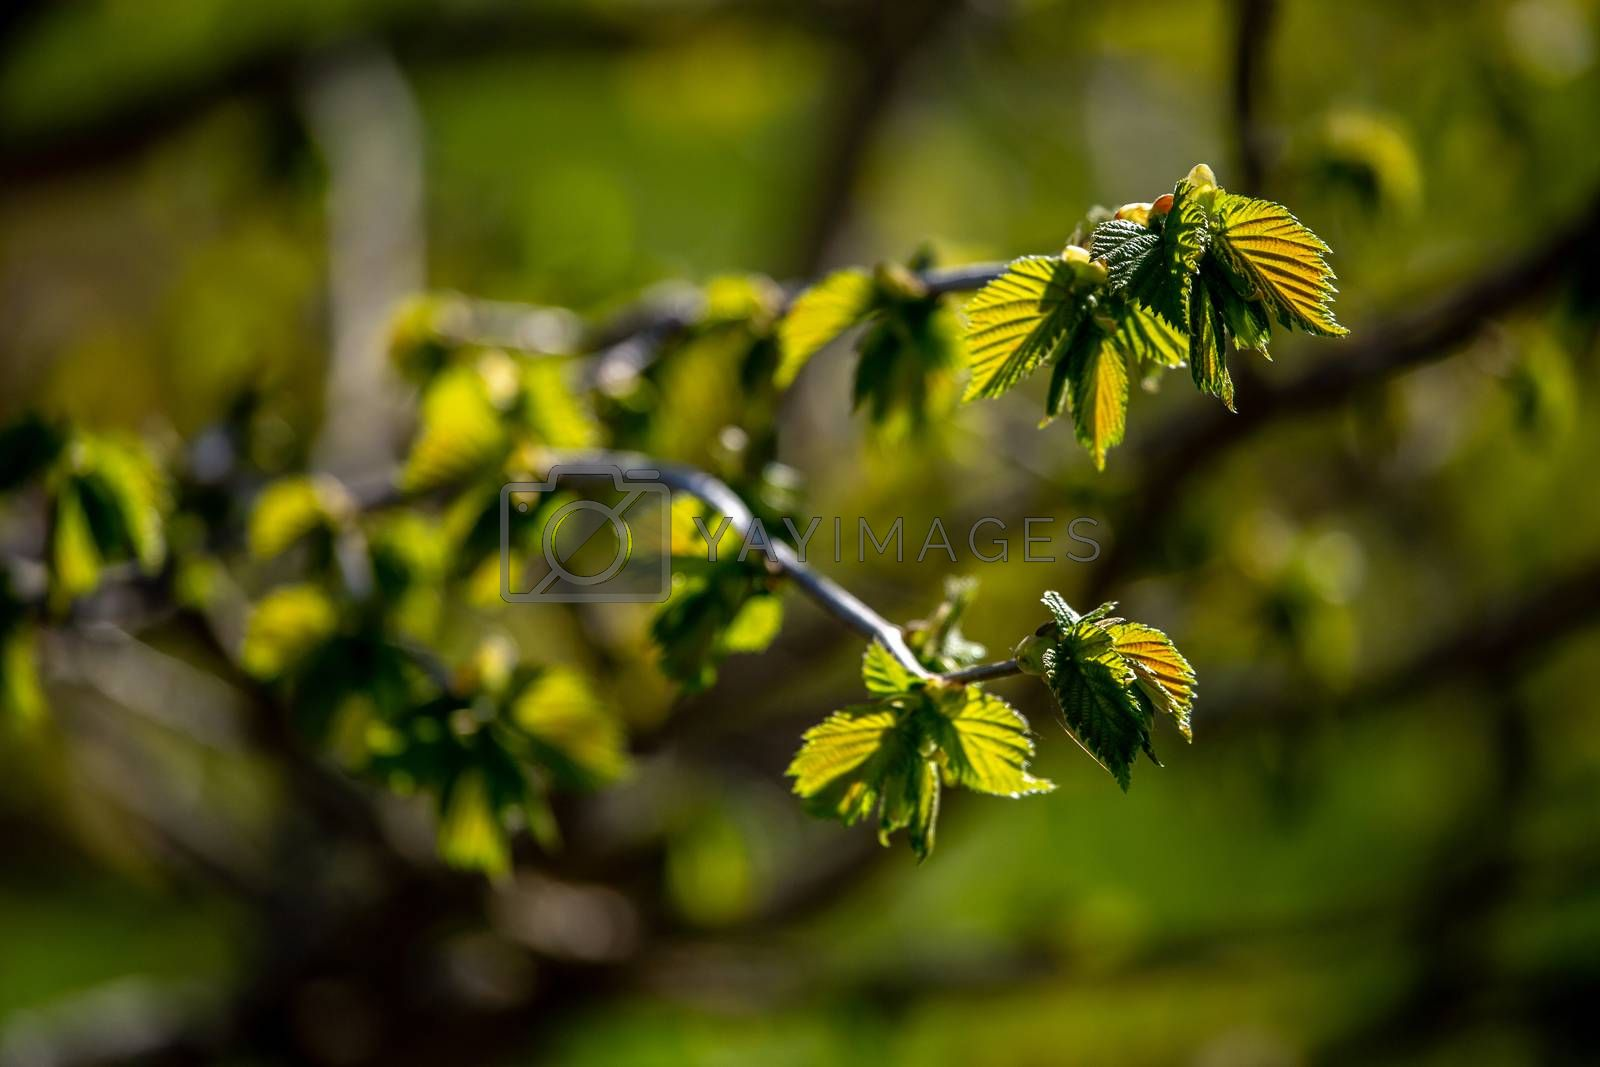 Bunch of young green branches of blackcurrant and fresh leaves at garden in springtime. Textured grape leaves close up on green background. Leaves of blackcurrant in early spring